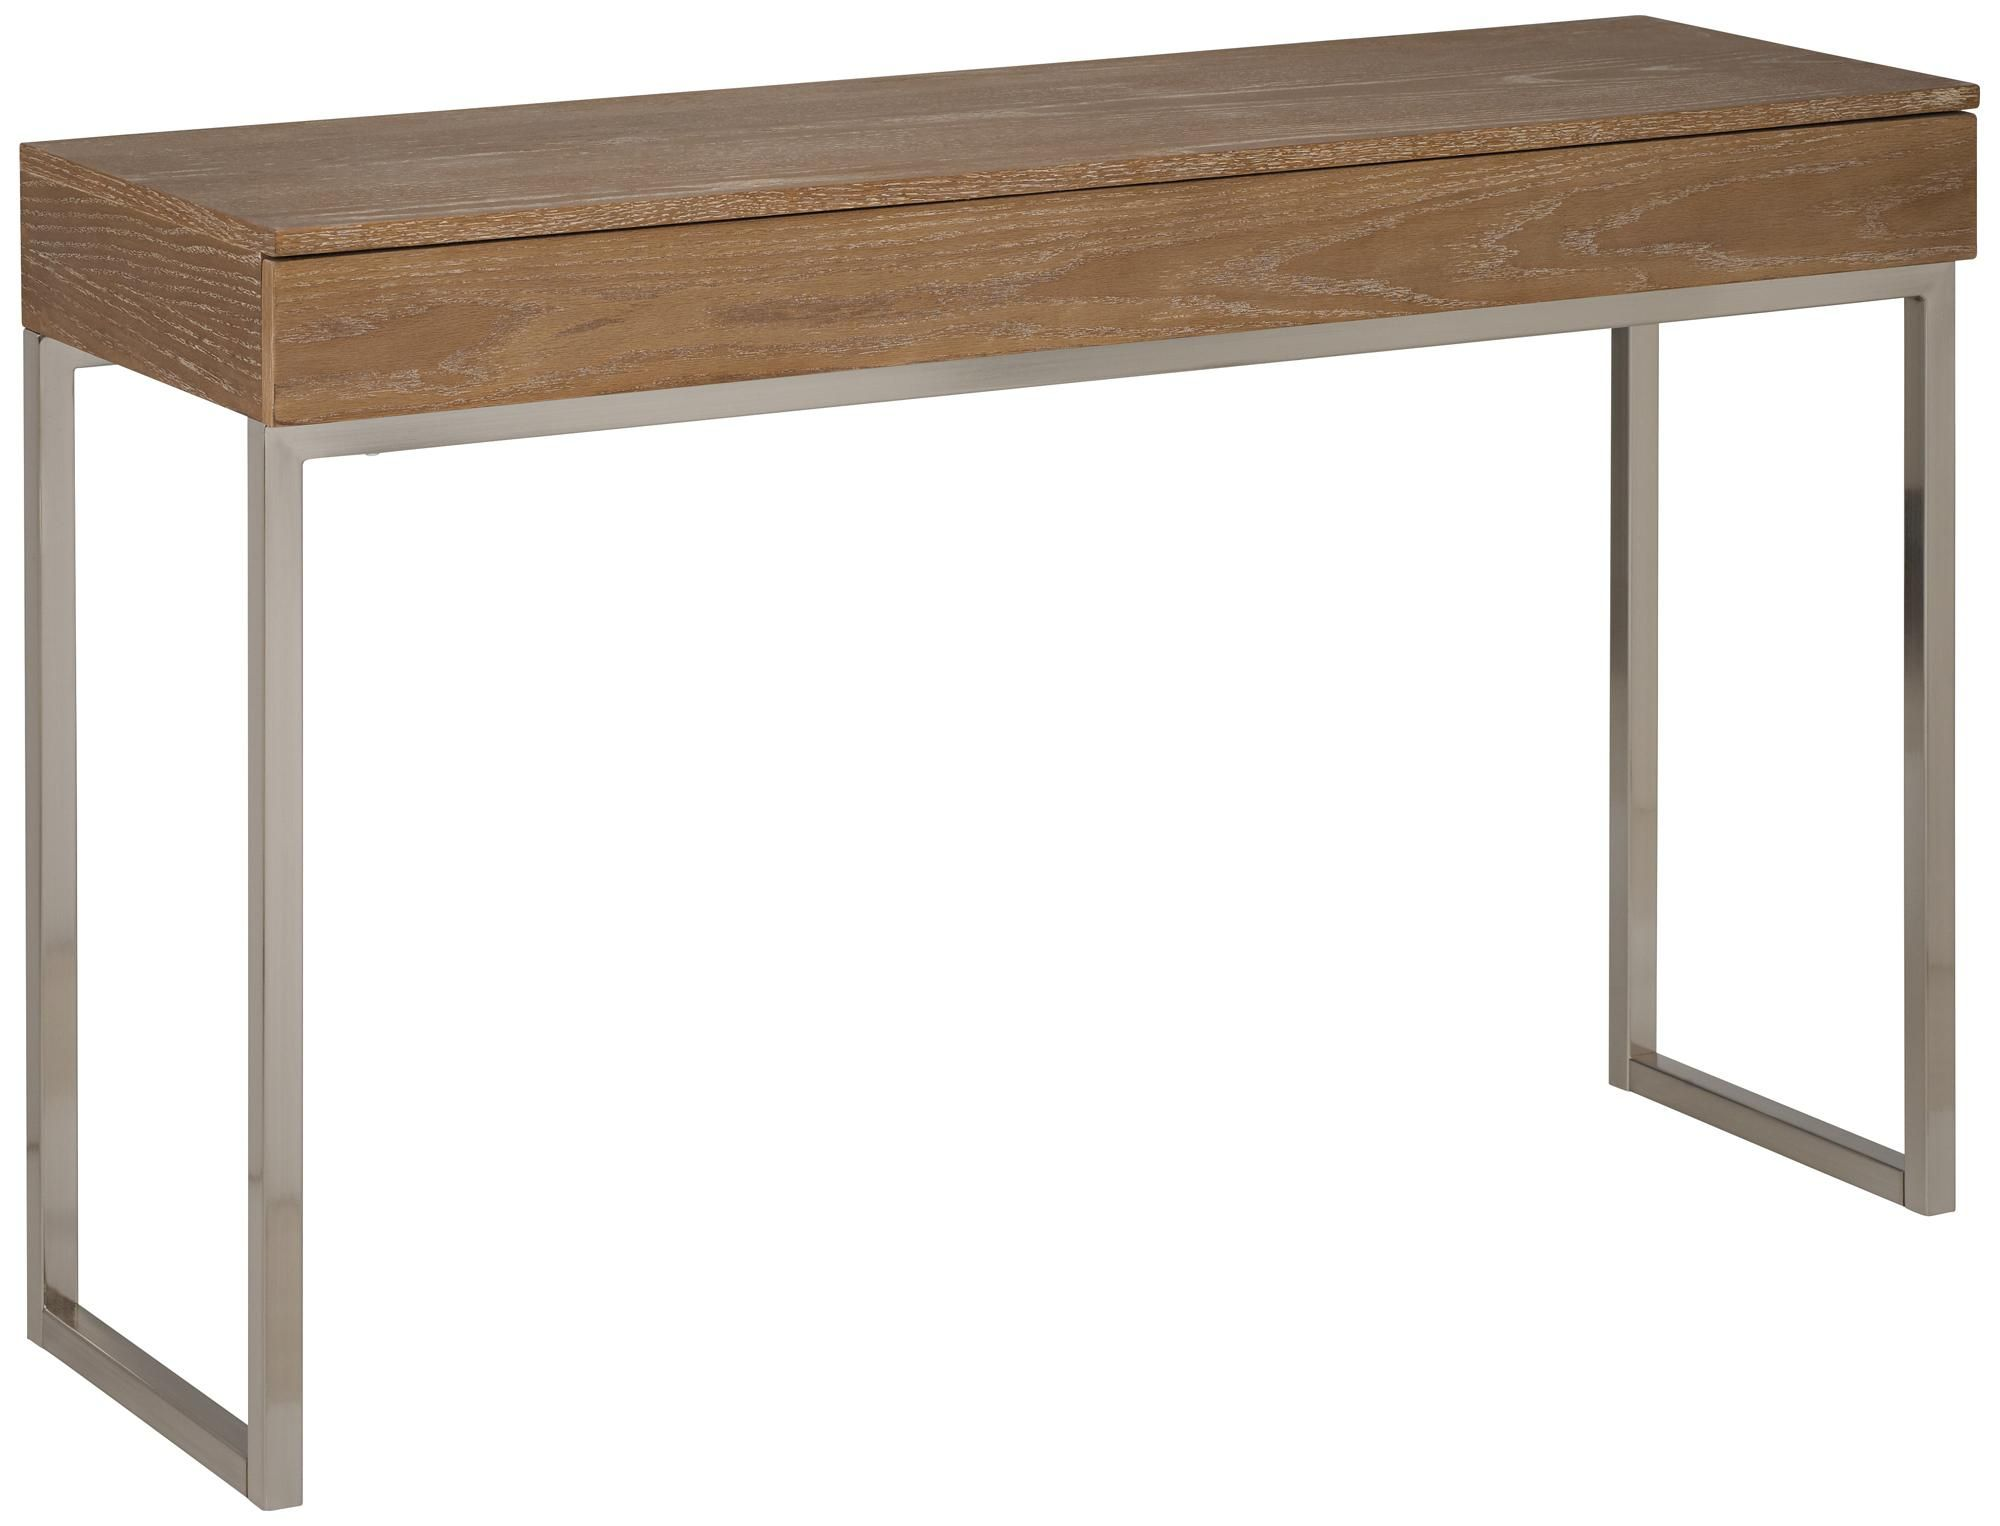 For sunroom office frameo driftwood console table for the frameo driftwood console table geotapseo Images